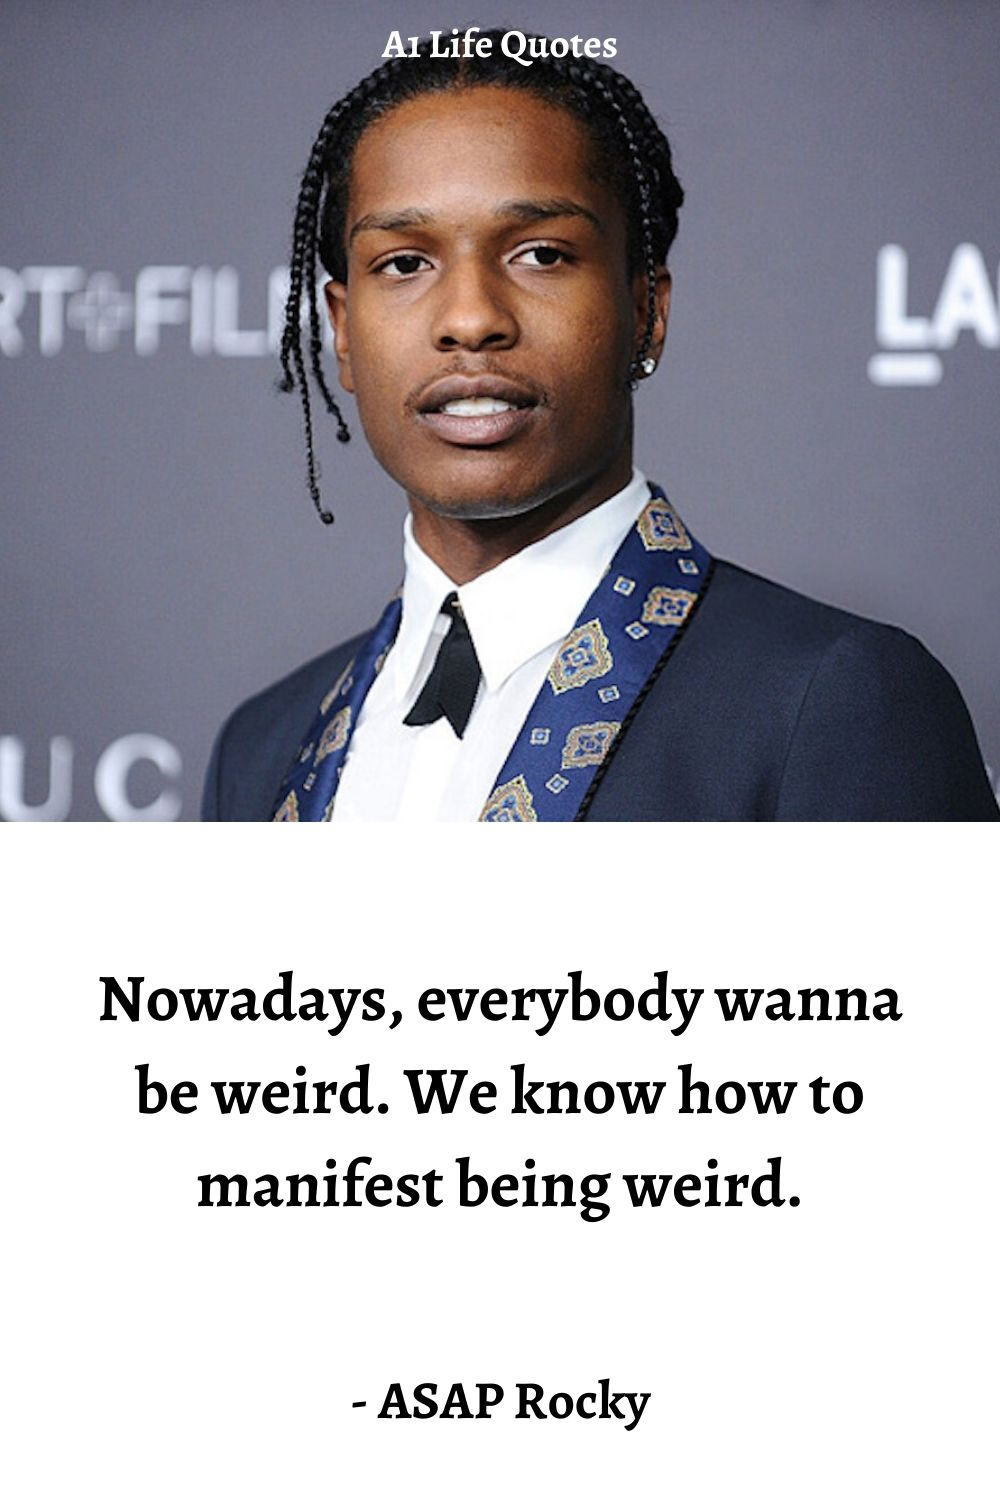 asap rocky quotes from songs